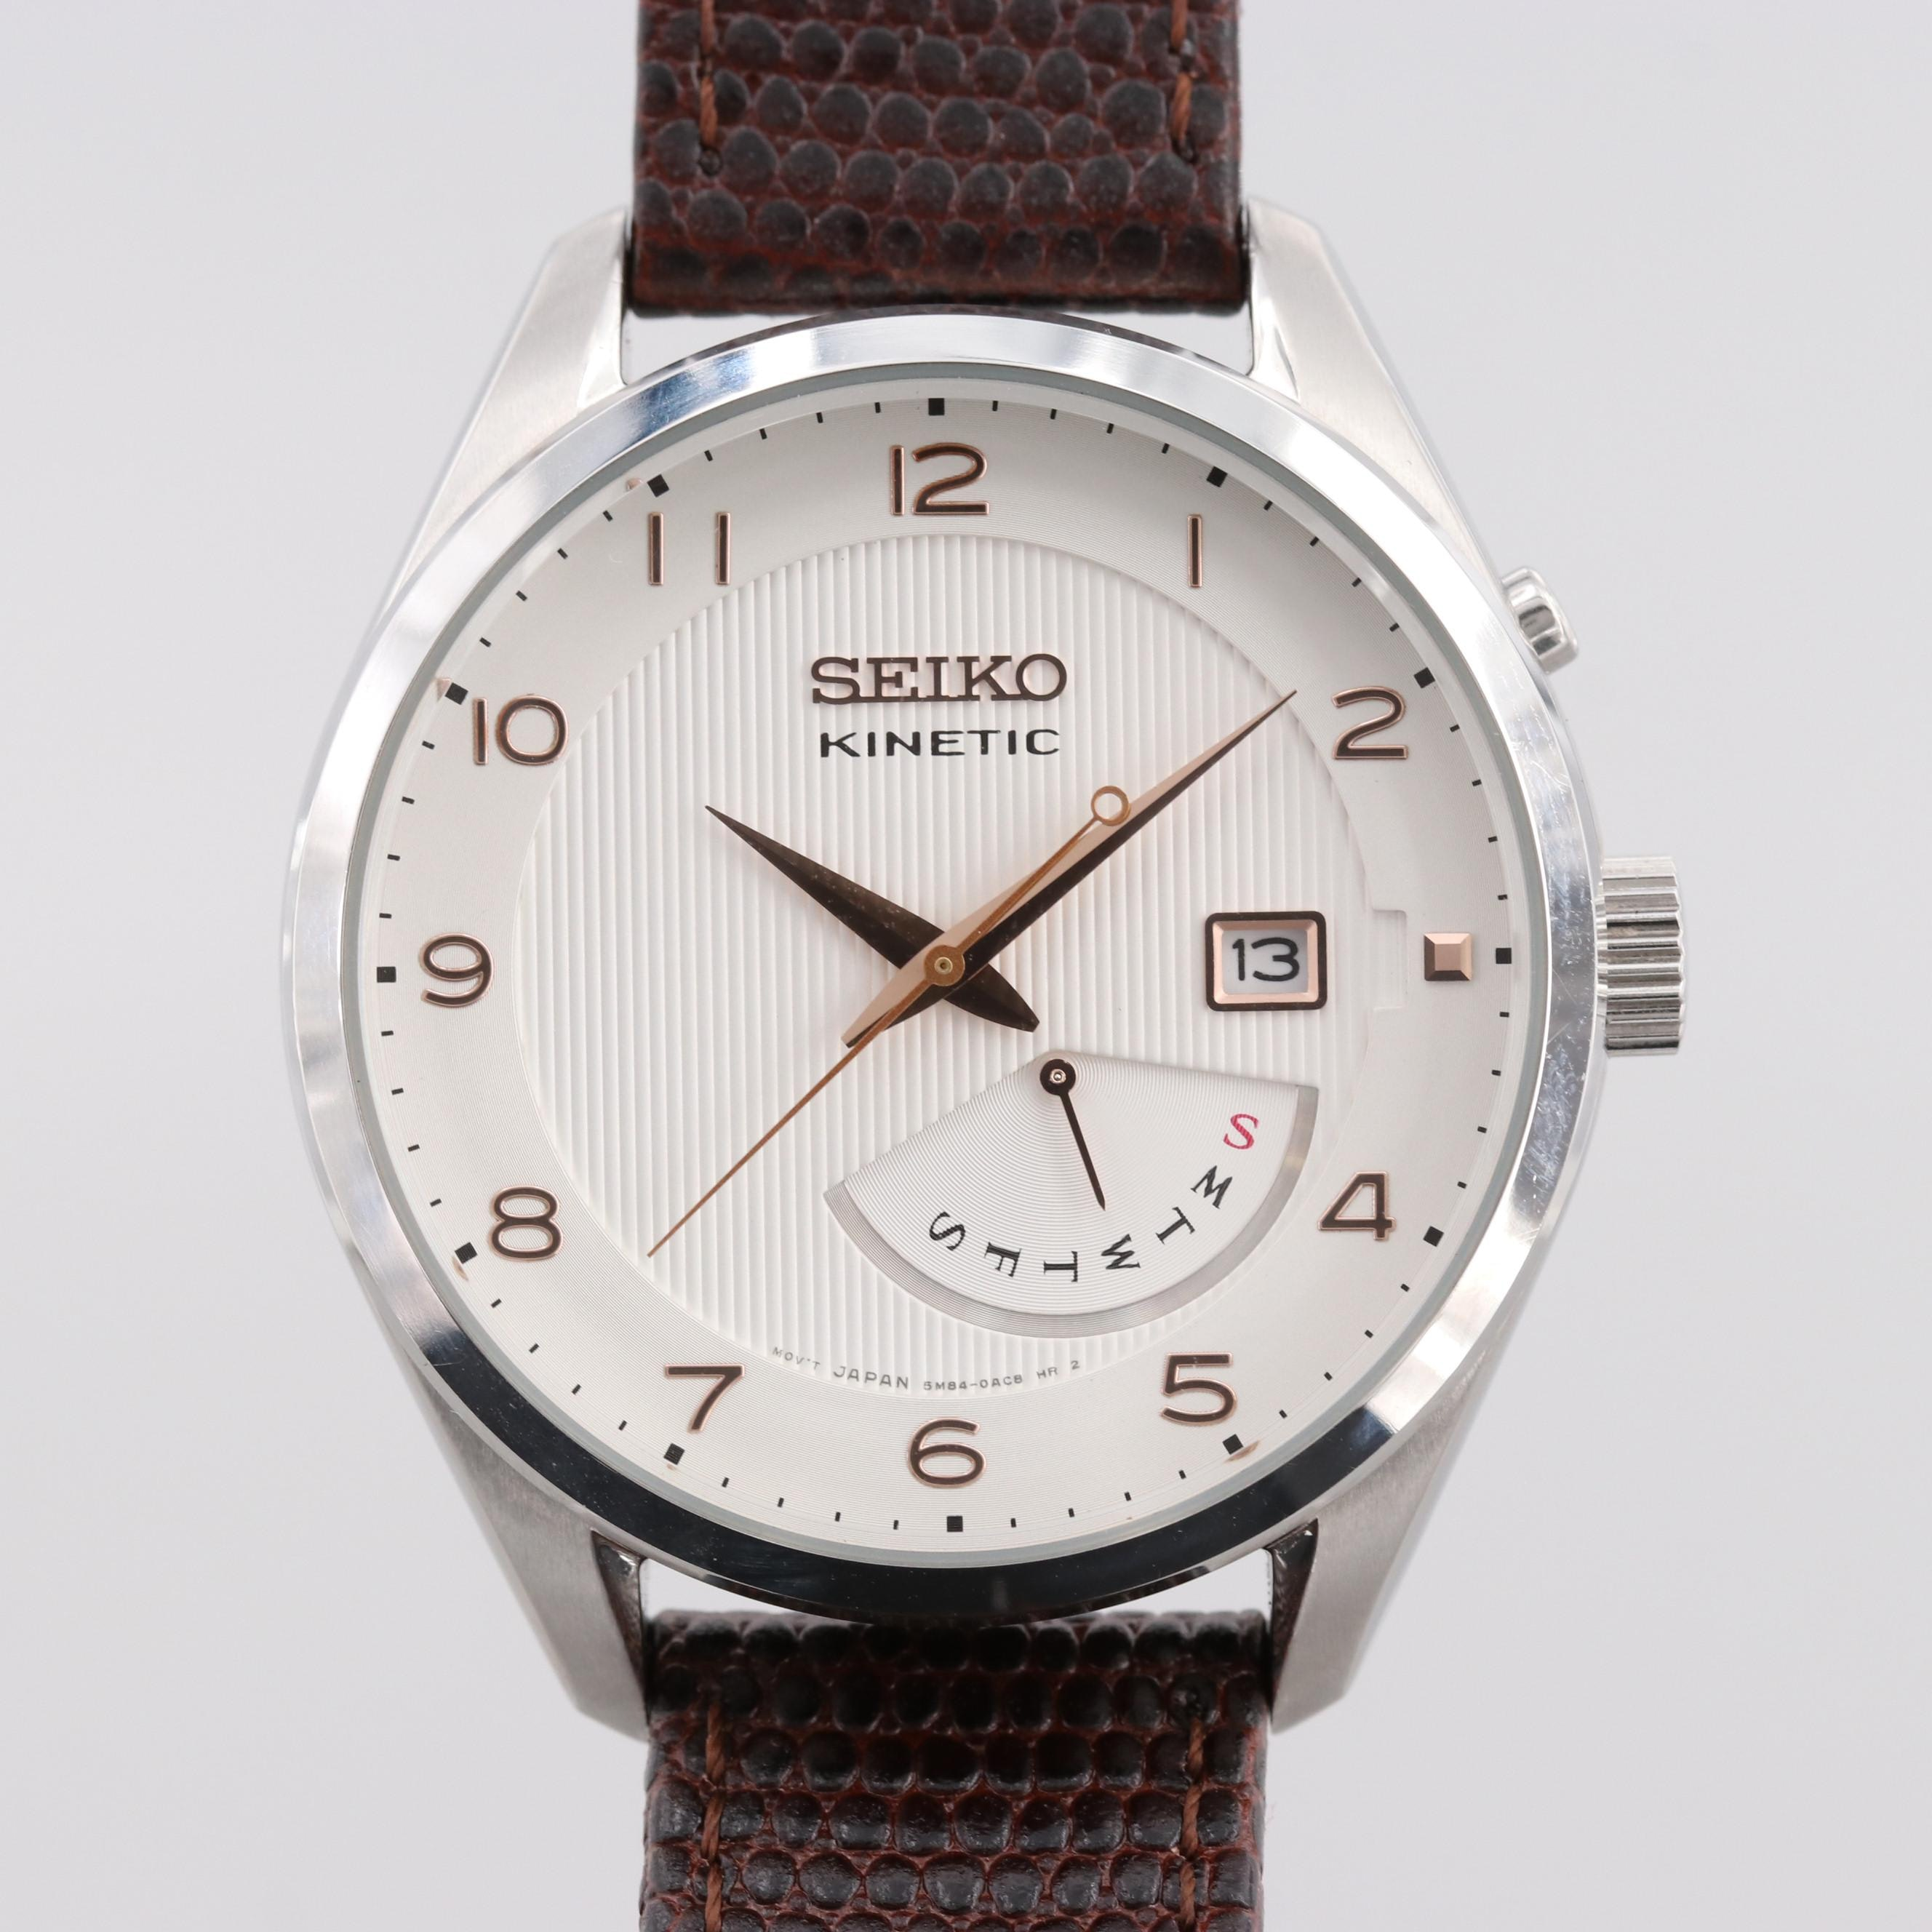 Seiko Kinetic Day-Date Wristwatch With Power Indicator